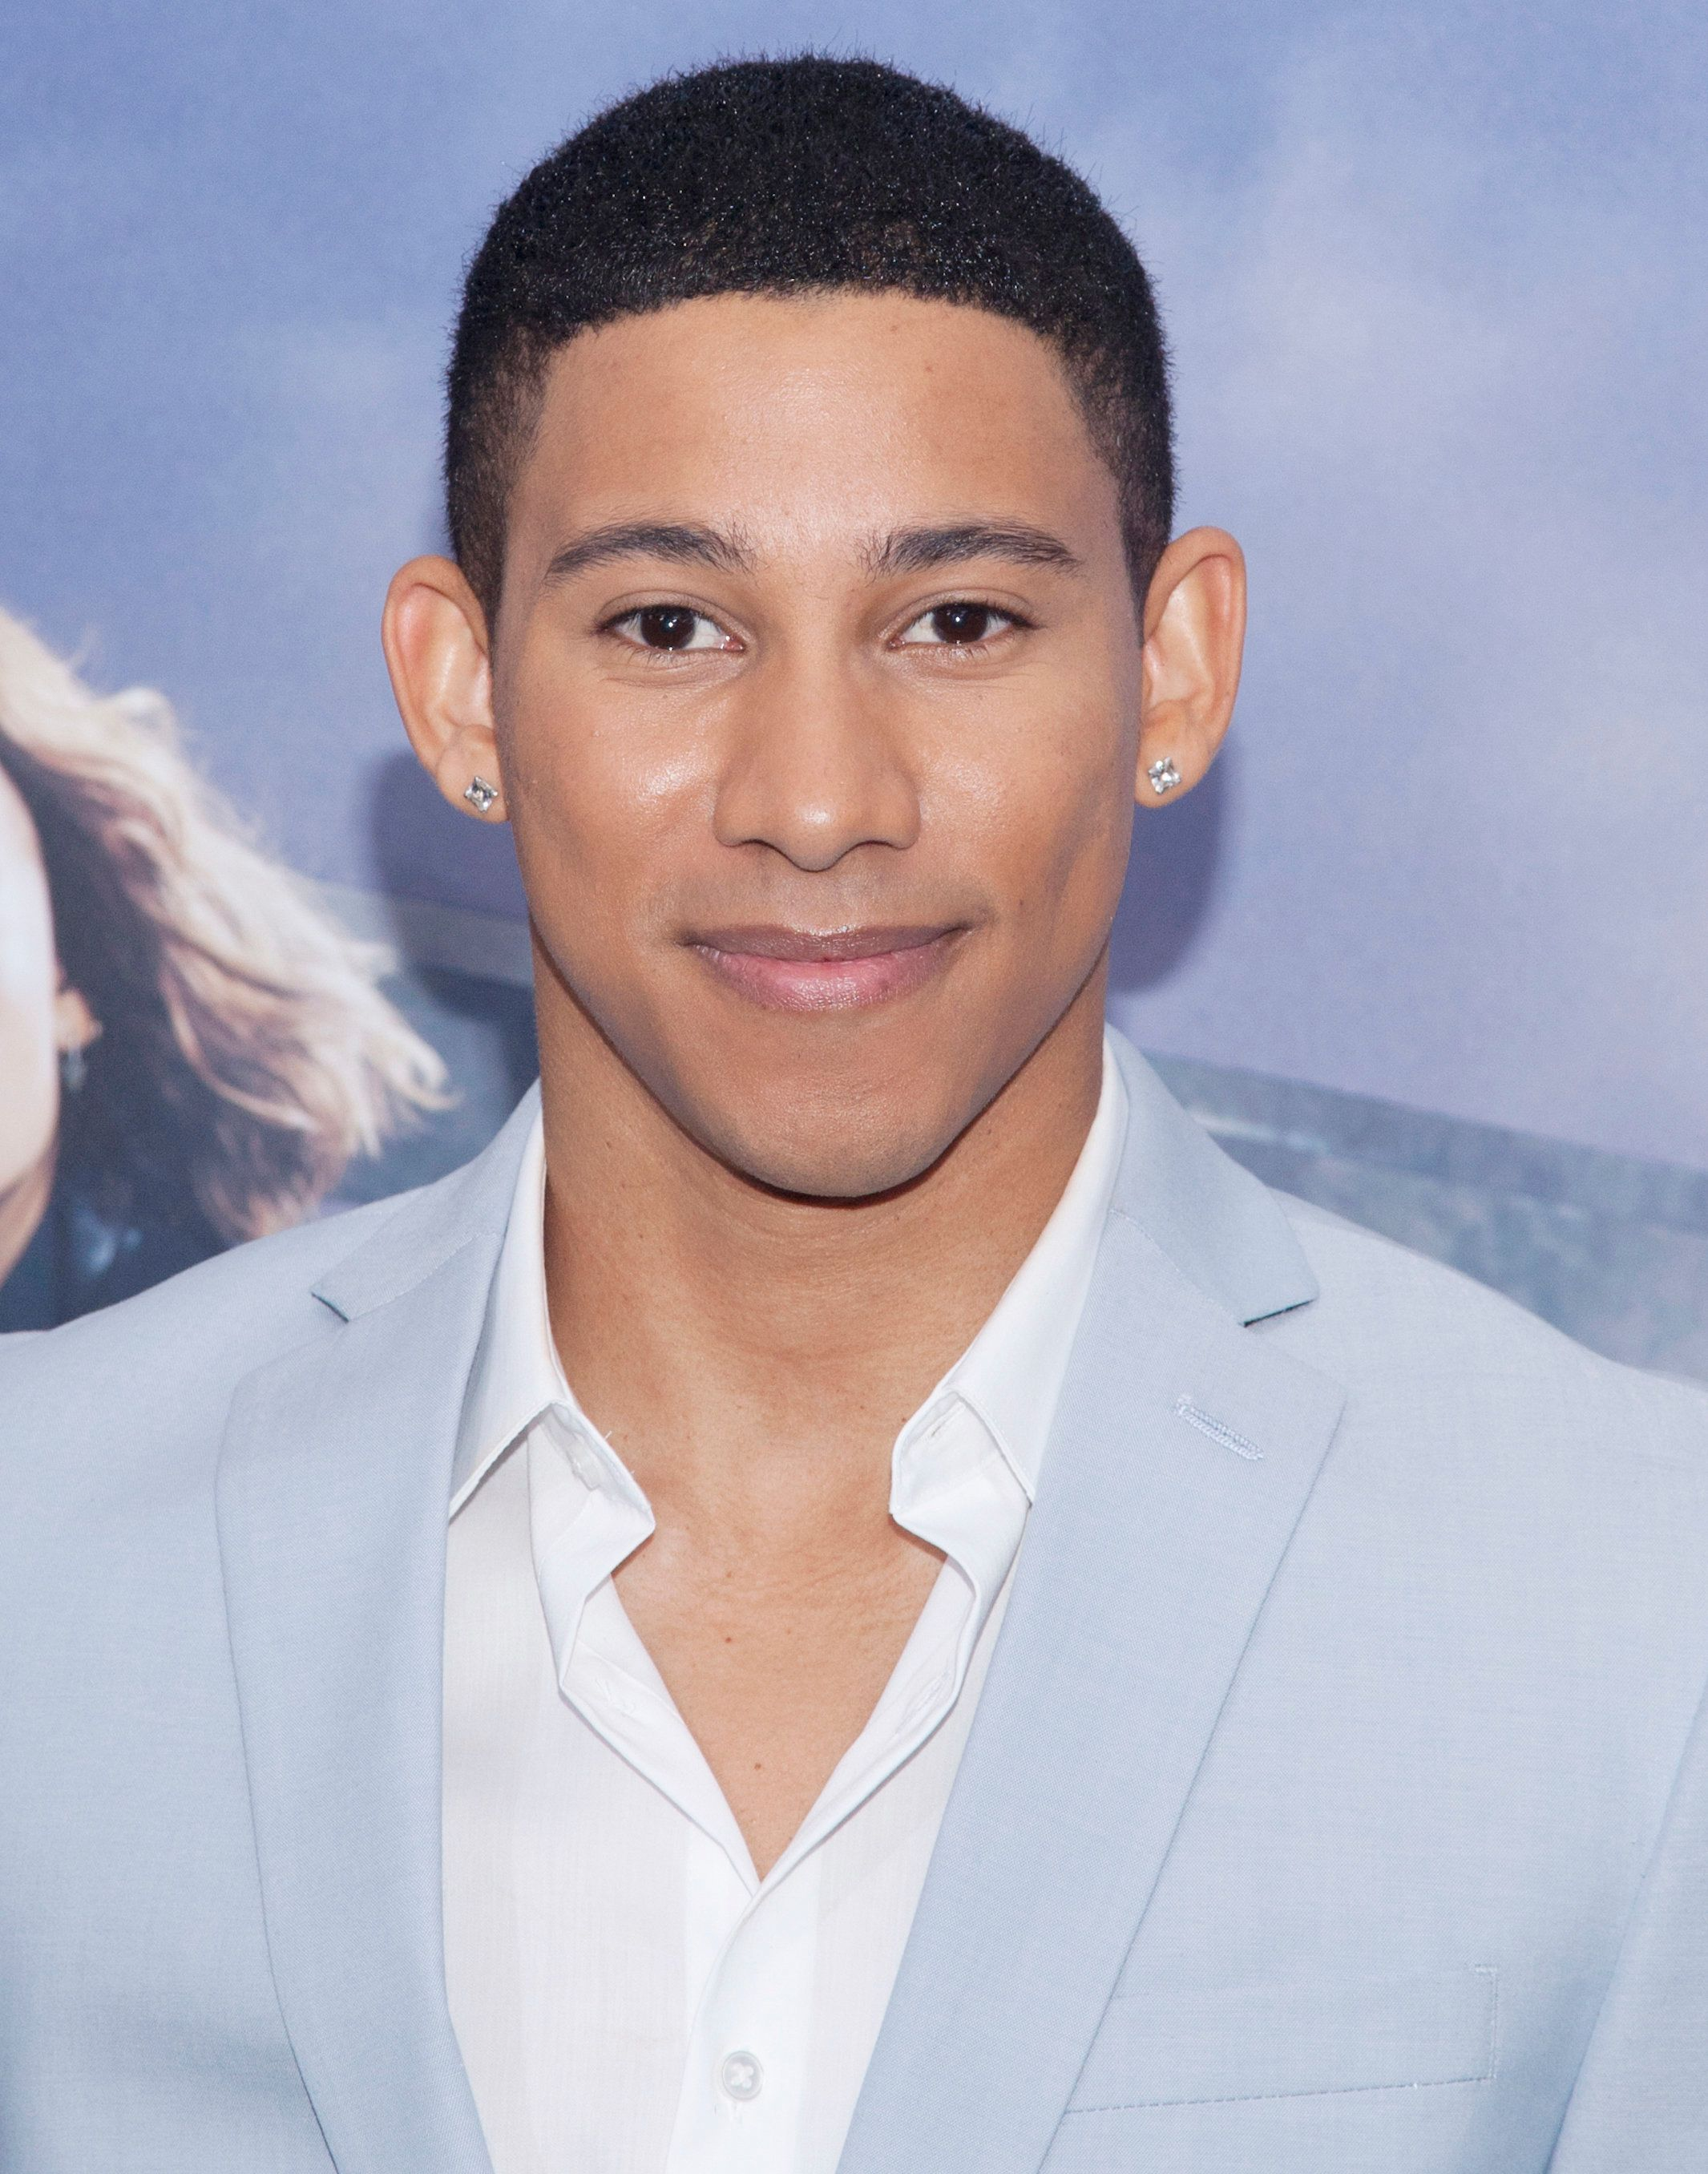 Keiynan Lonsdale attends 'The Divergent Series: Allegiant' world premiere at the AMC Loews Lincoln Square in New York City. �� LAN (Photo by Lars Niki/Corbis via Getty Images)